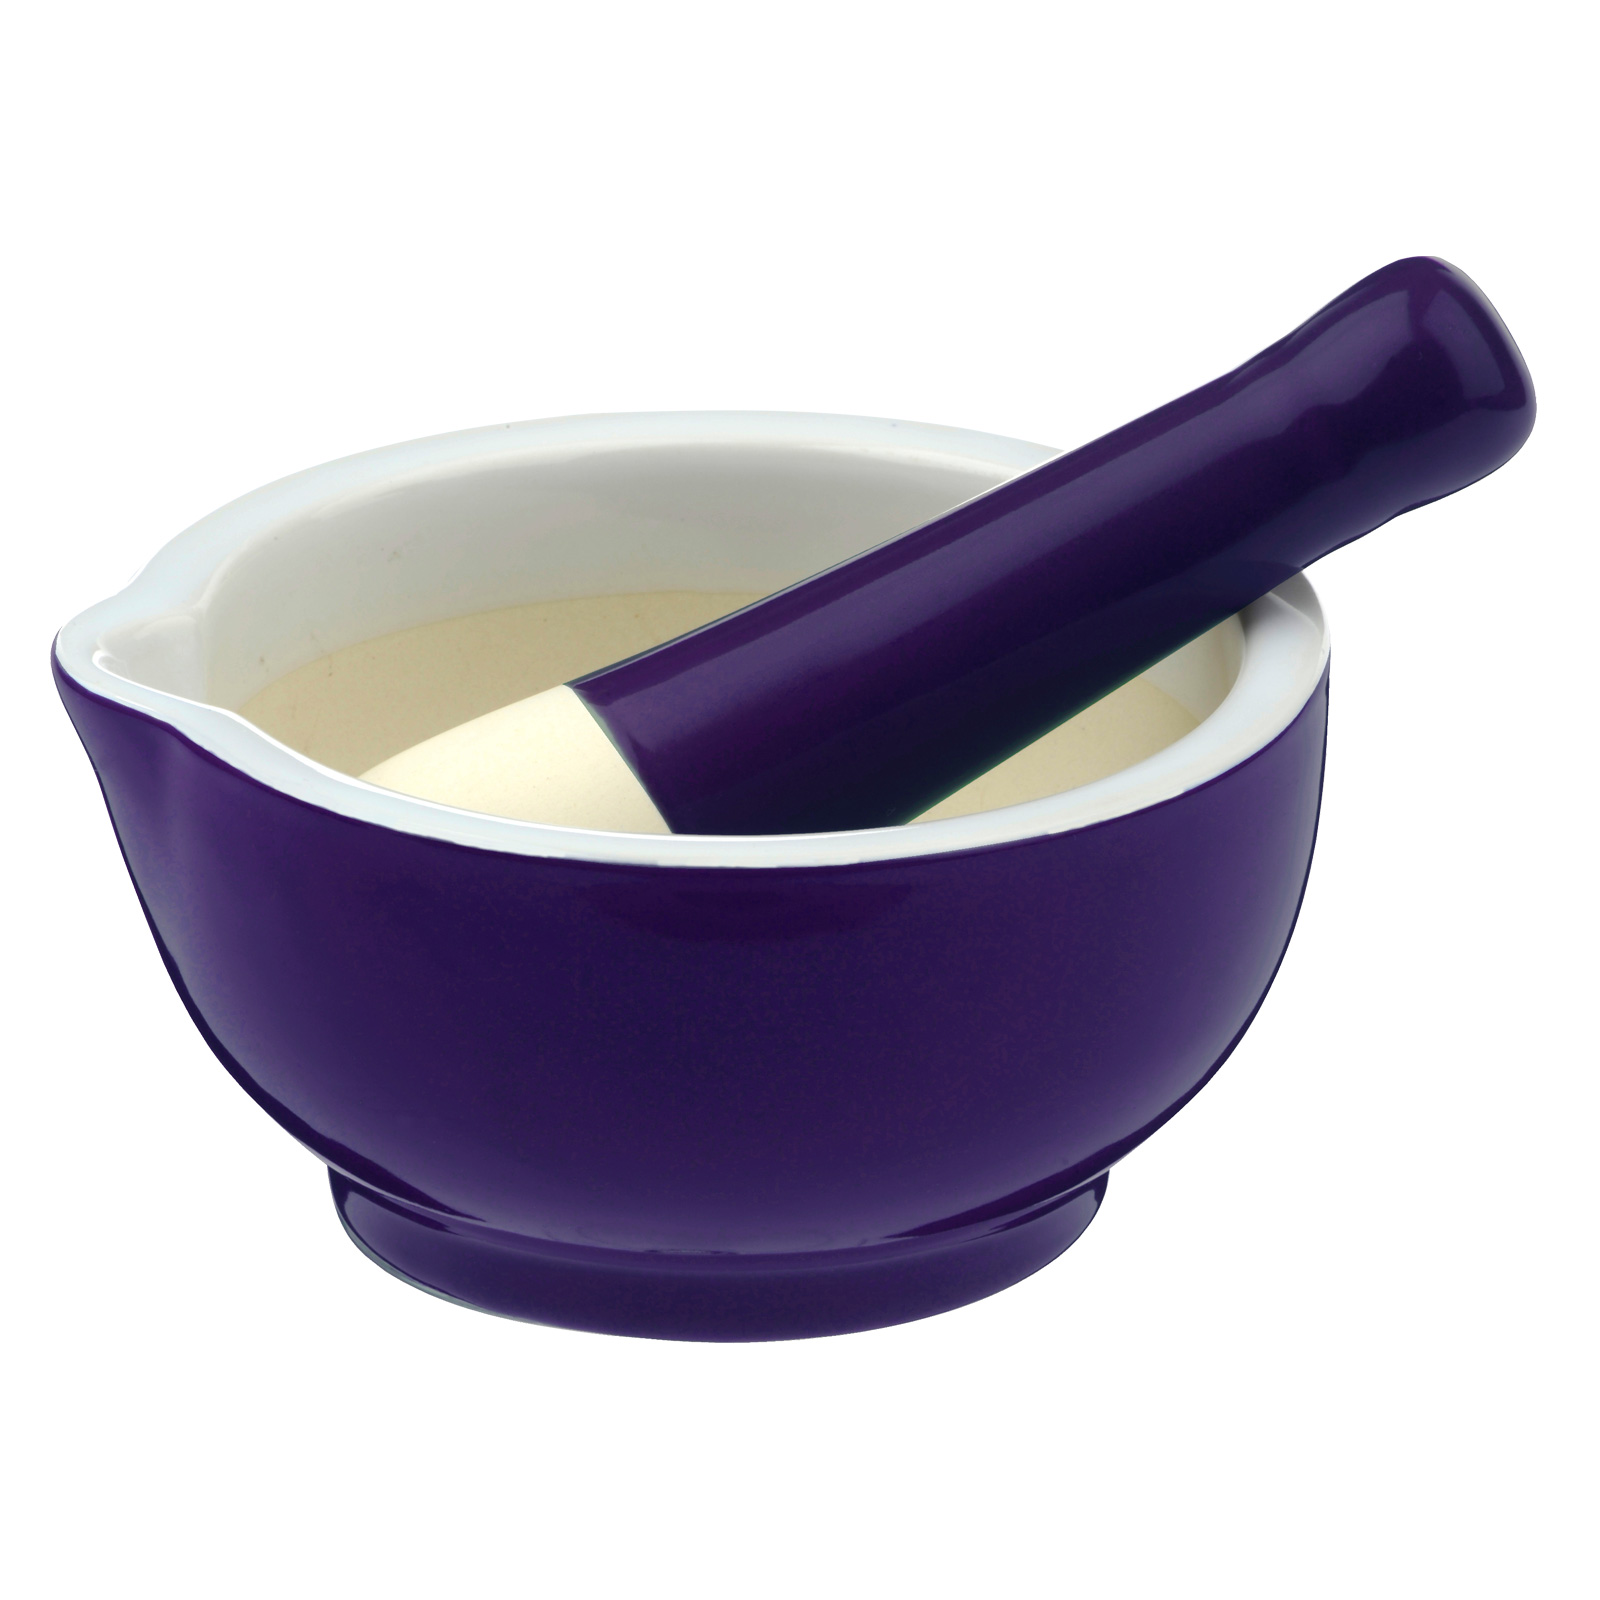 SCOOP! Mortar & Pestle Purple by BIA